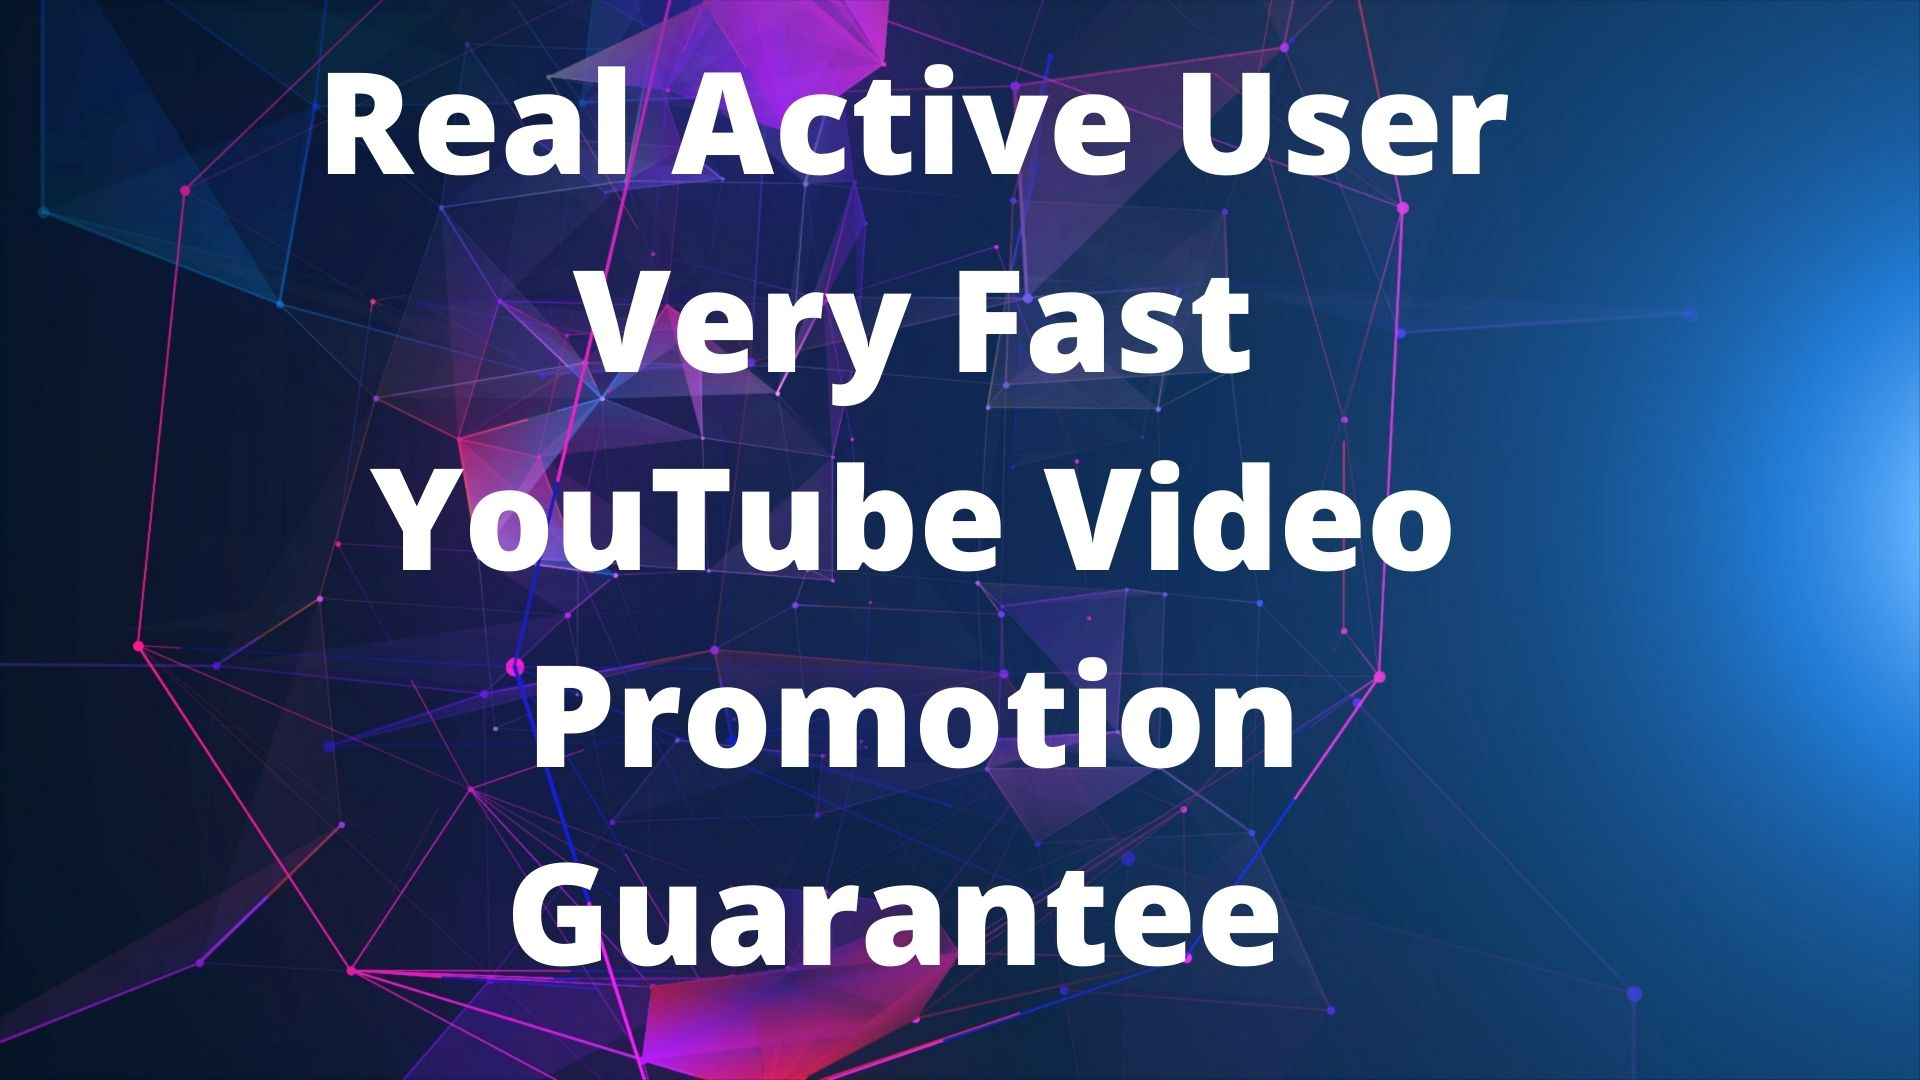 Real Active User Very Fast YouTube Video Promotion Guarantee